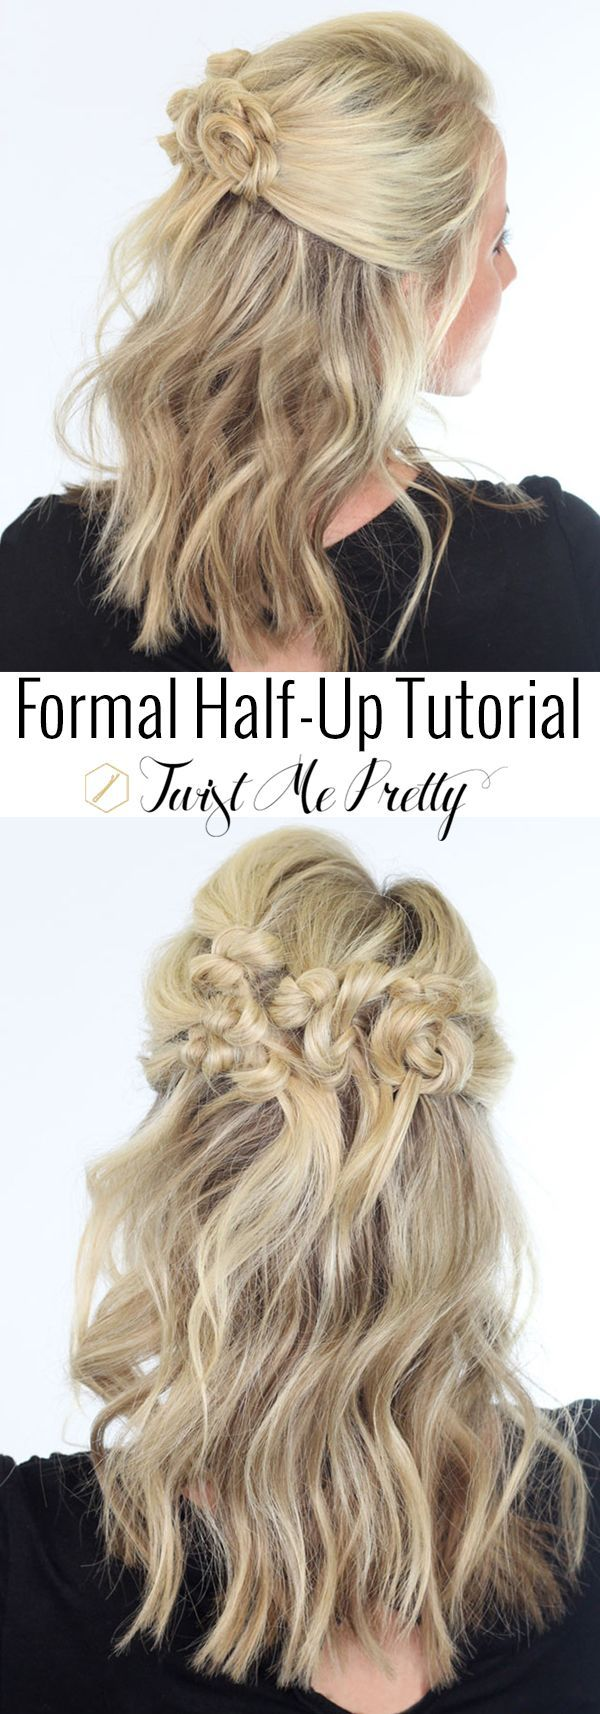 A Gorgeous Half Up Style That Works Perfectly On Medium